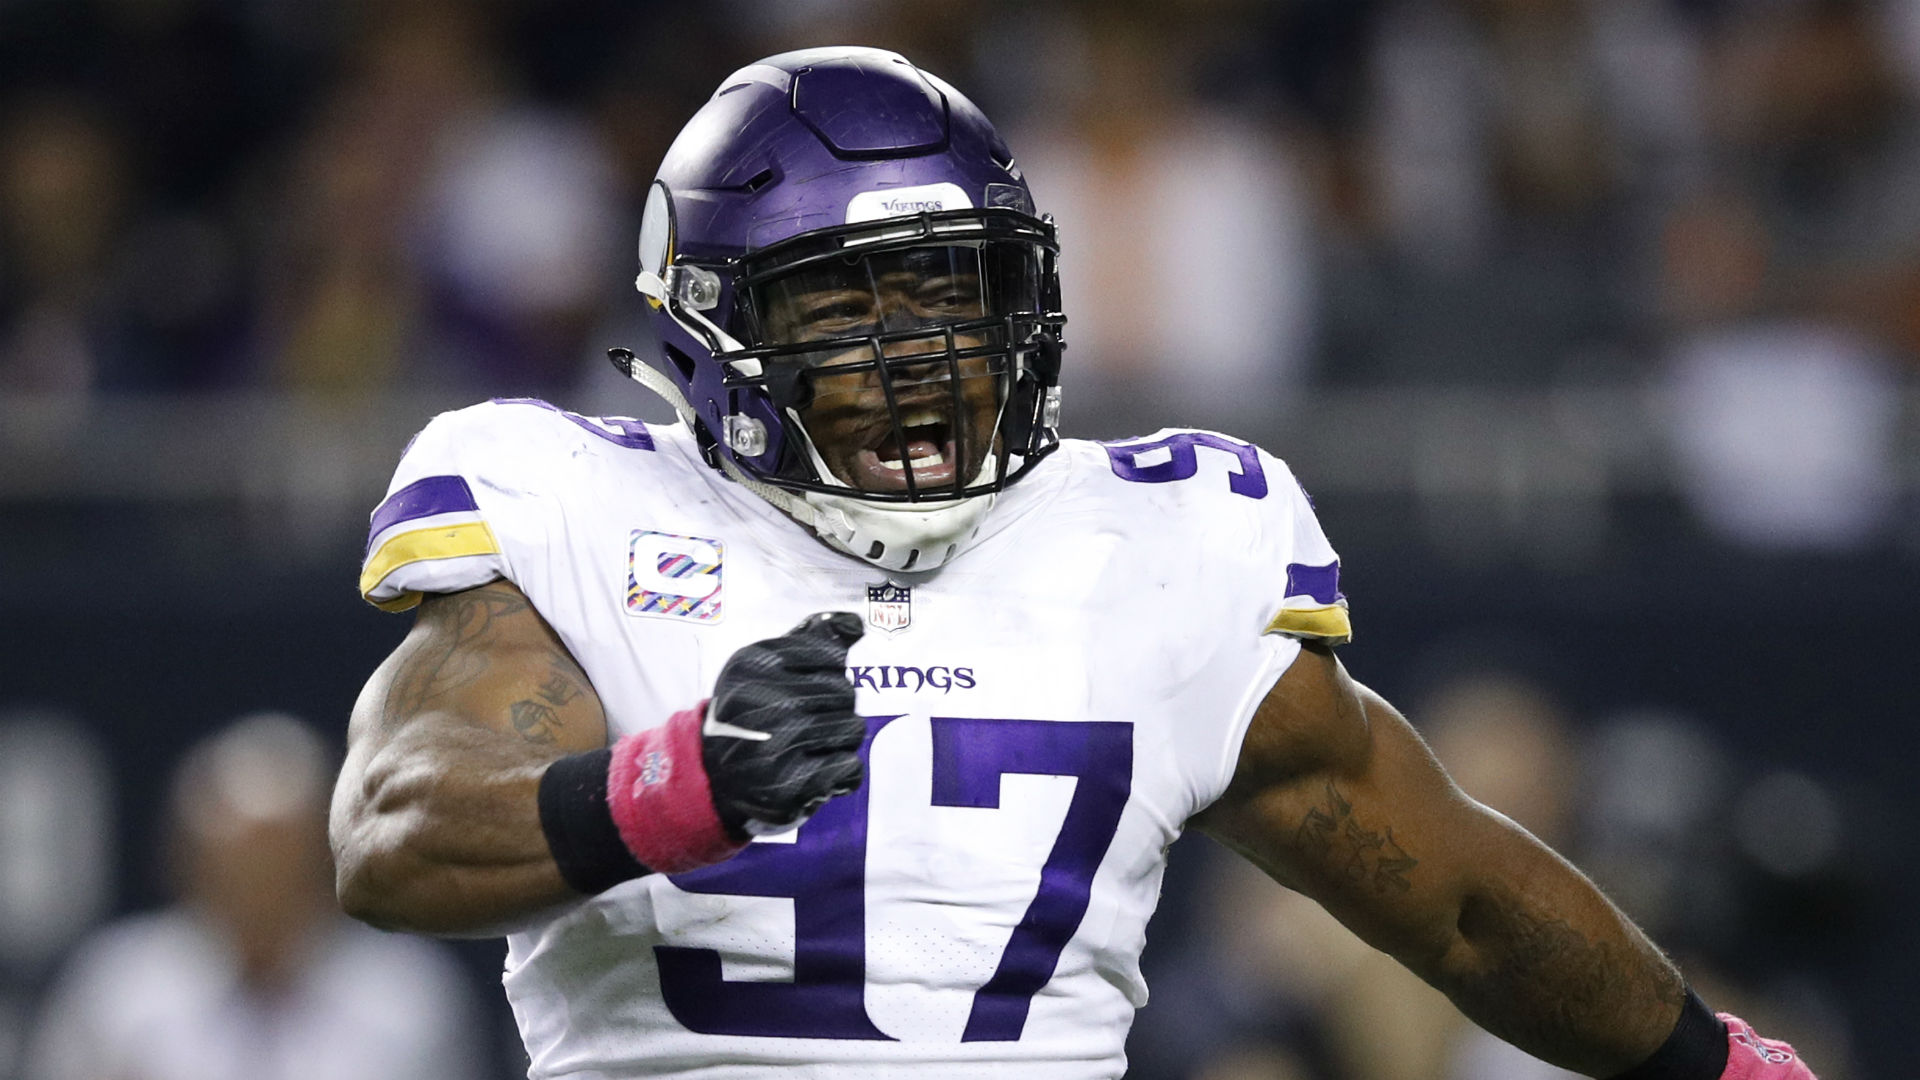 Minnesota Vikings: Everson Griffen asks fans to help name newborn son